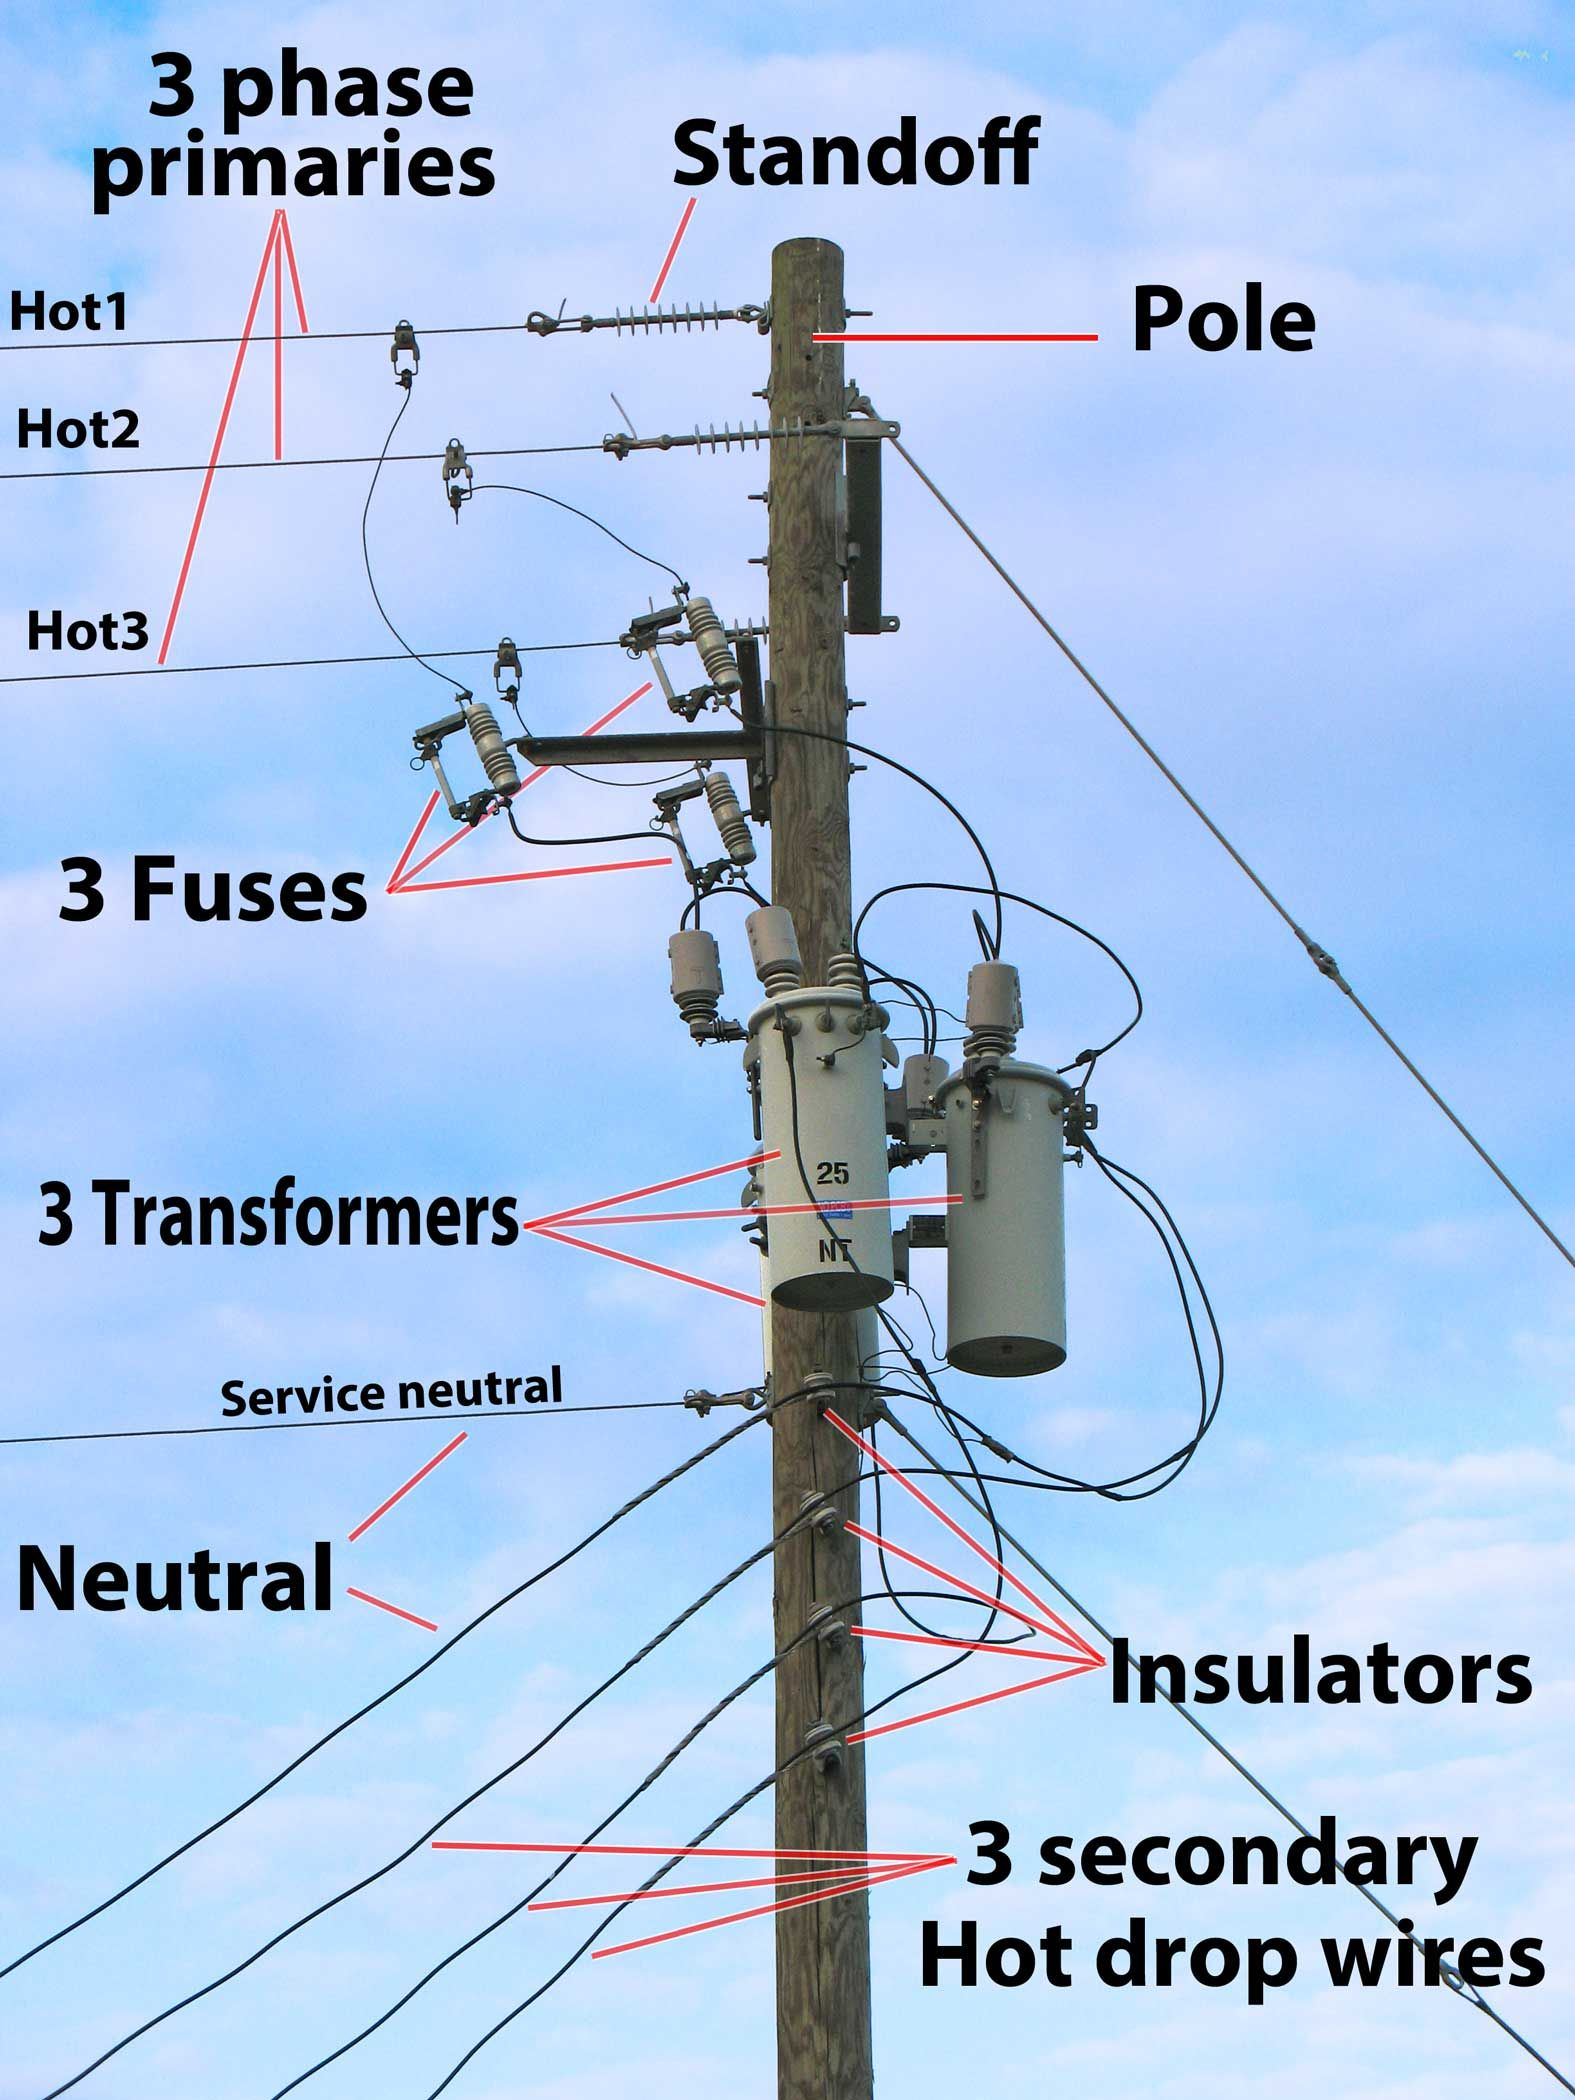 Electric Pole Guide Wire Free Owners Manual Building Wiring Diagram Pin By Luis Monte On Disenos Industriales Pinterest Electrical Rh Com Barn Power Wires